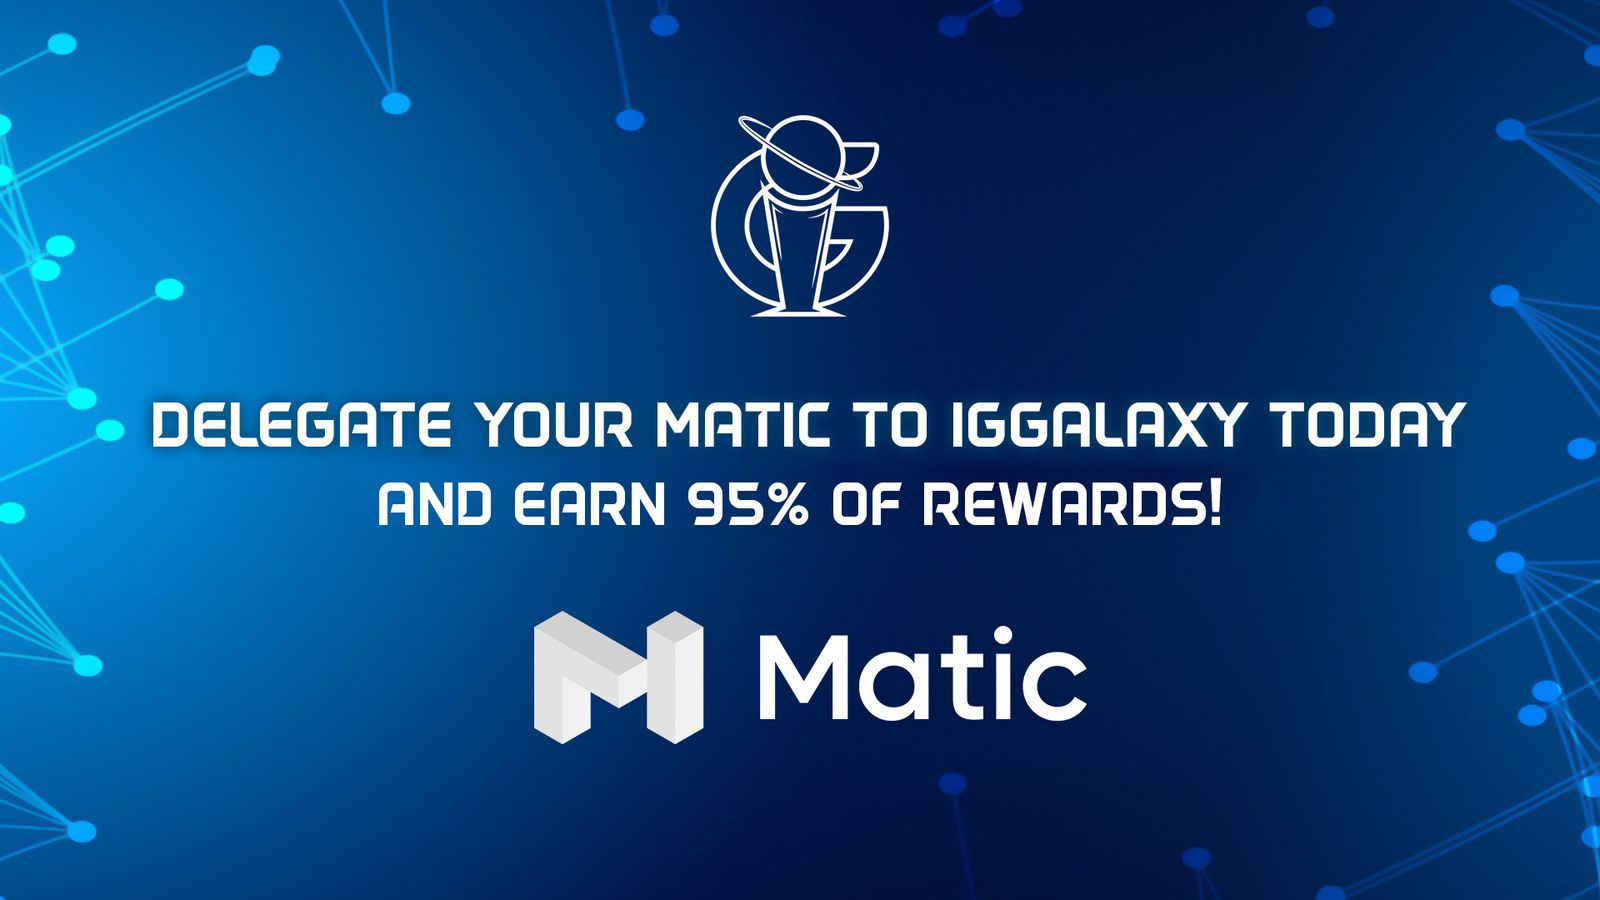 Re-delegate to IGGalaxy to continue earning MATIC rewards!